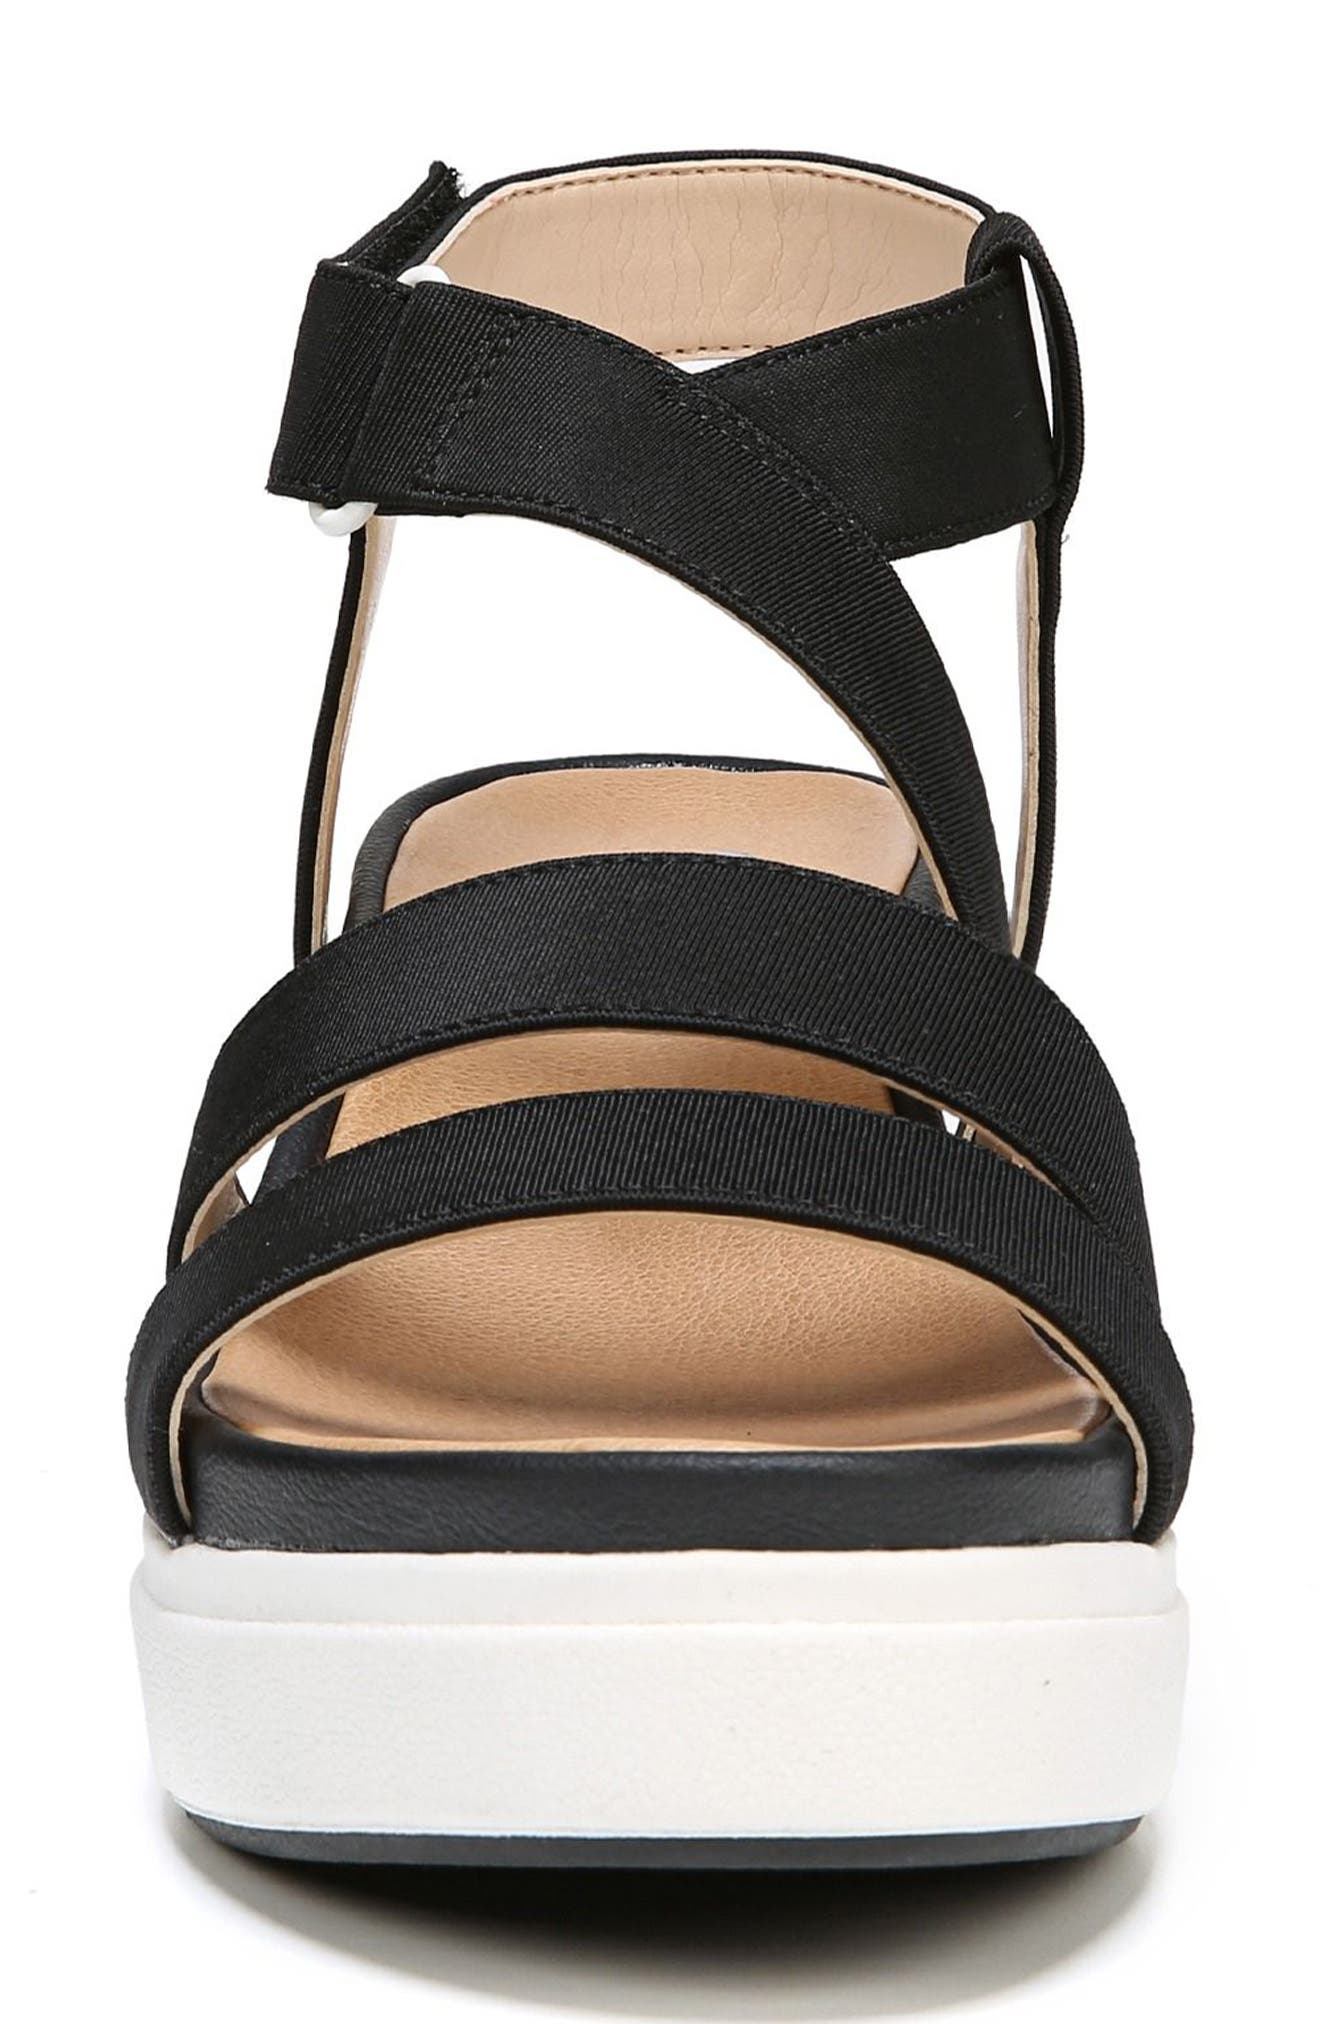 Social Wedge Sandal,                             Alternate thumbnail 4, color,                             BLACK